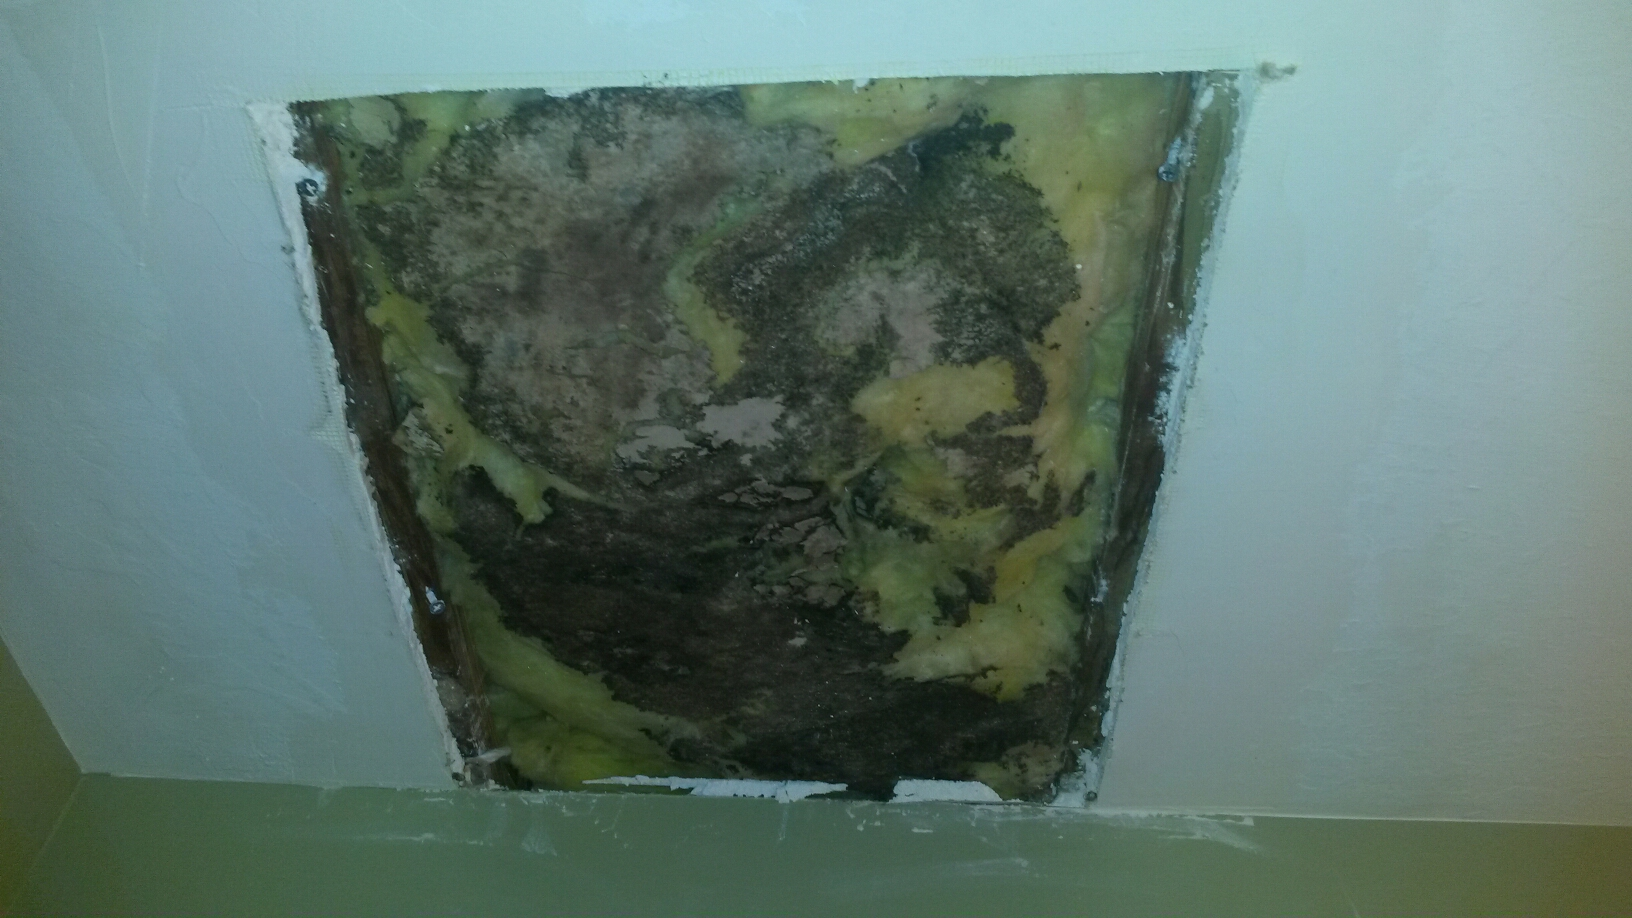 Layton, UT - Mold cleanup in Layton Utah. The dark moldy insulation in the picture, I just barely uncovered. The homeowner had hired a handyman to repair the water damaged drywall on the ceiling of this bathroom. He had already cut out the old drywall and patched in a new piece of drywall. The homeowner asked me to remove his repair so that I could thoroughly inspect the damage. There is a significant amount of mold in the ceiling cavity that should be cleaned up, but this was not concerning to the handyman.